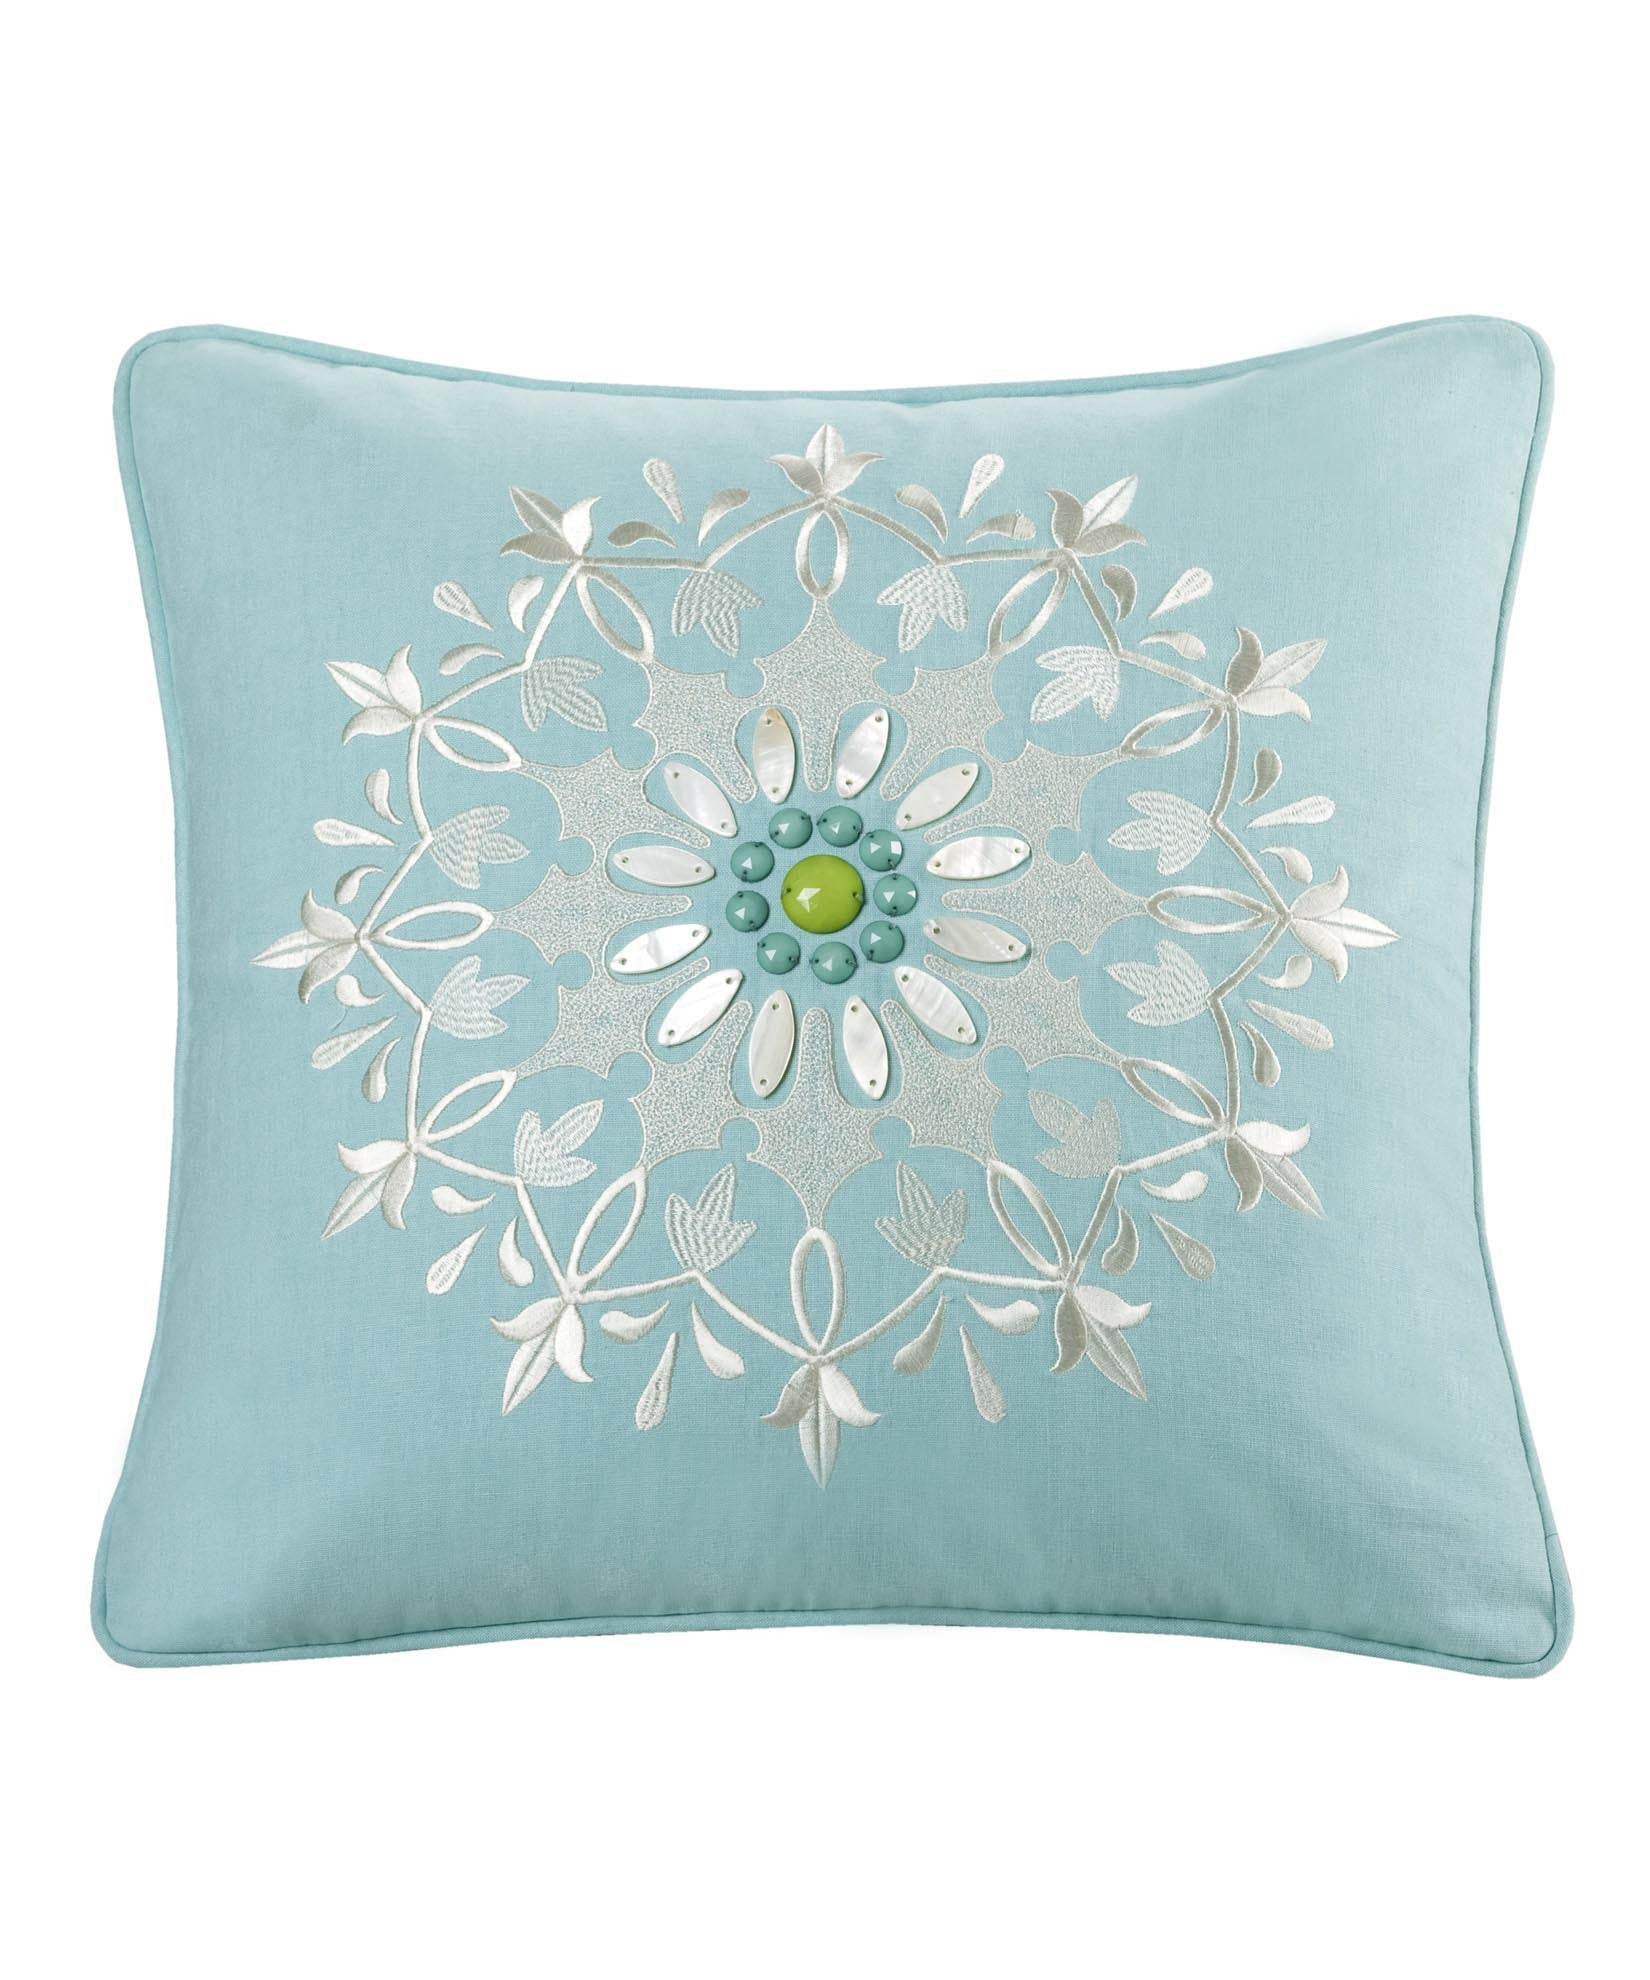 Aqua - Medallion Dec Pillow